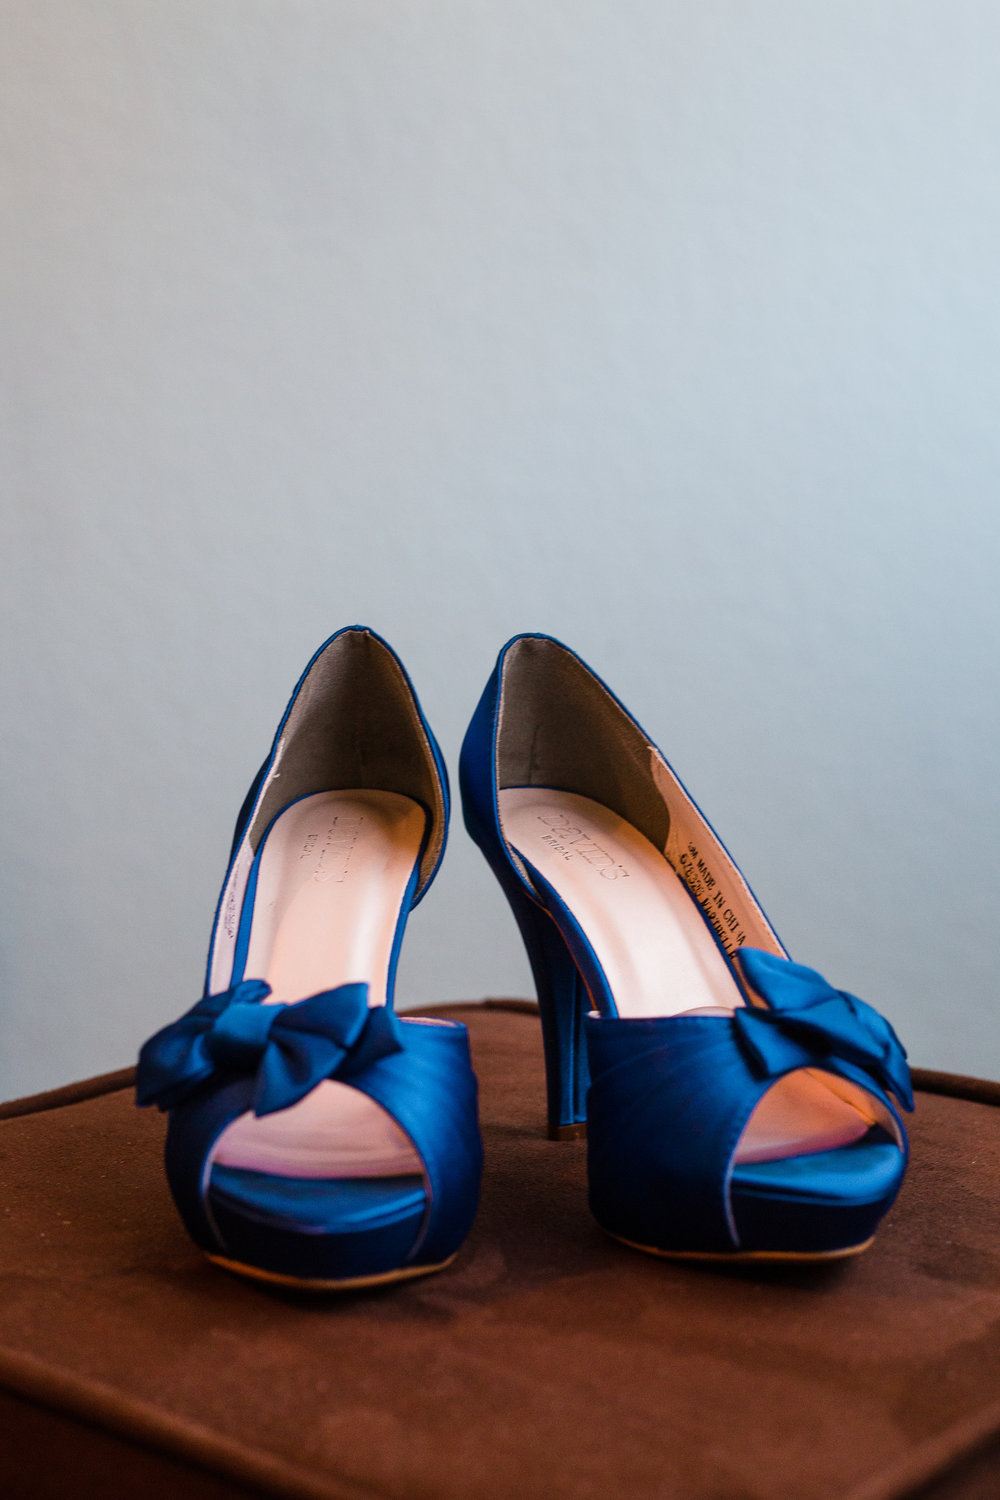 bethany and ryan-17-wedding-shoes.jpg